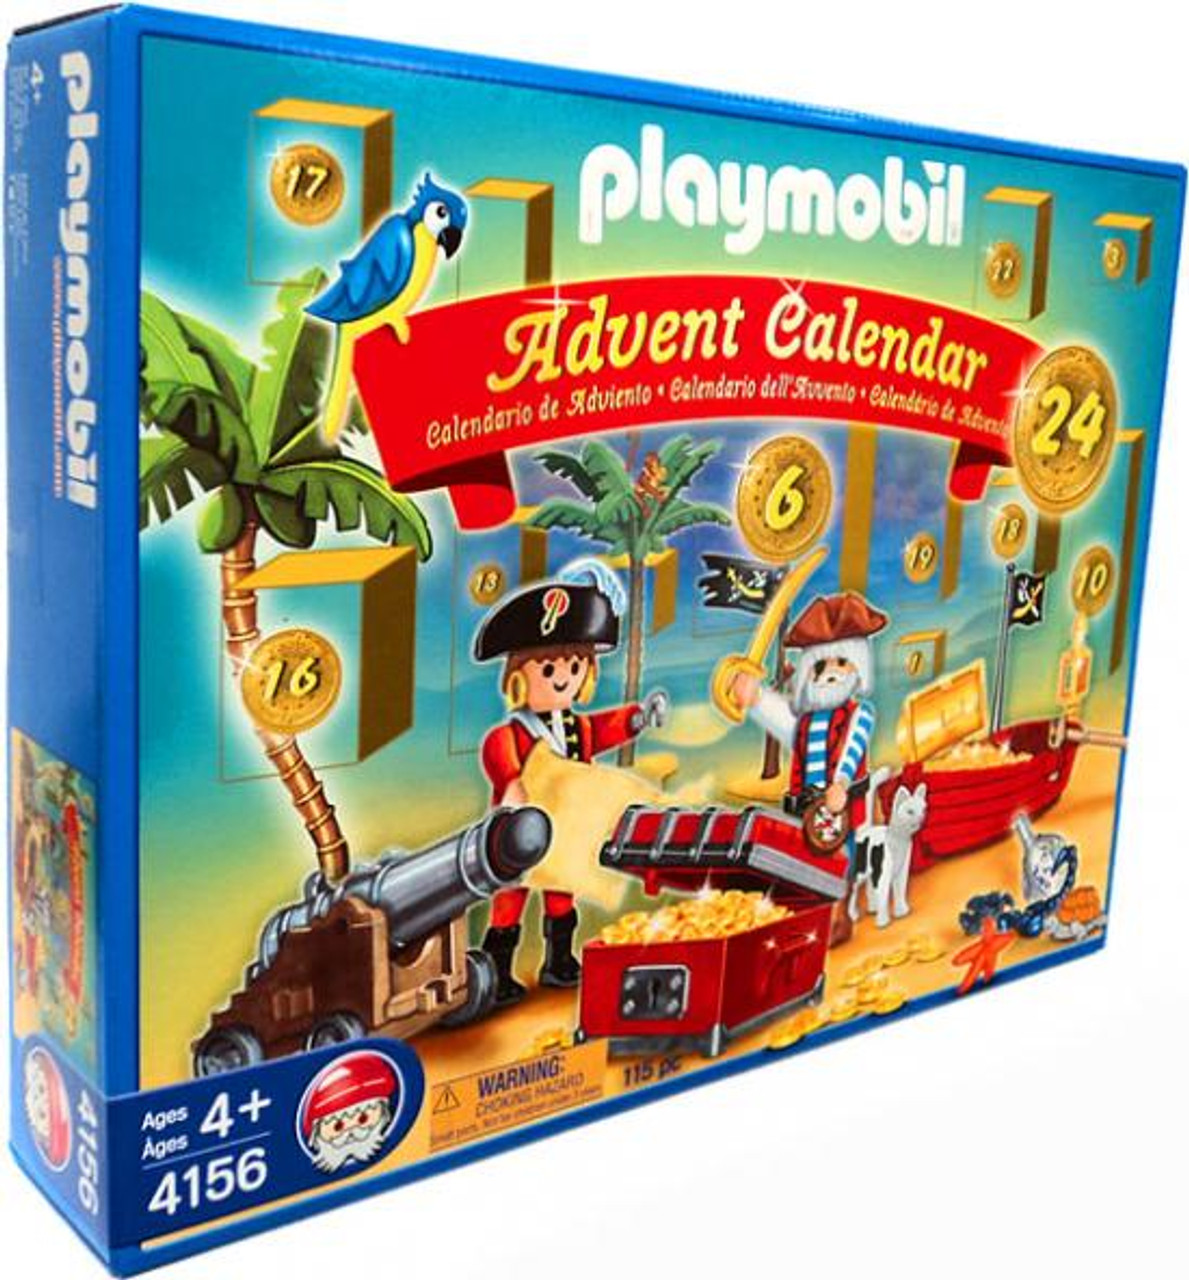 Playmobil Advent Calendar Pirates Set #4156